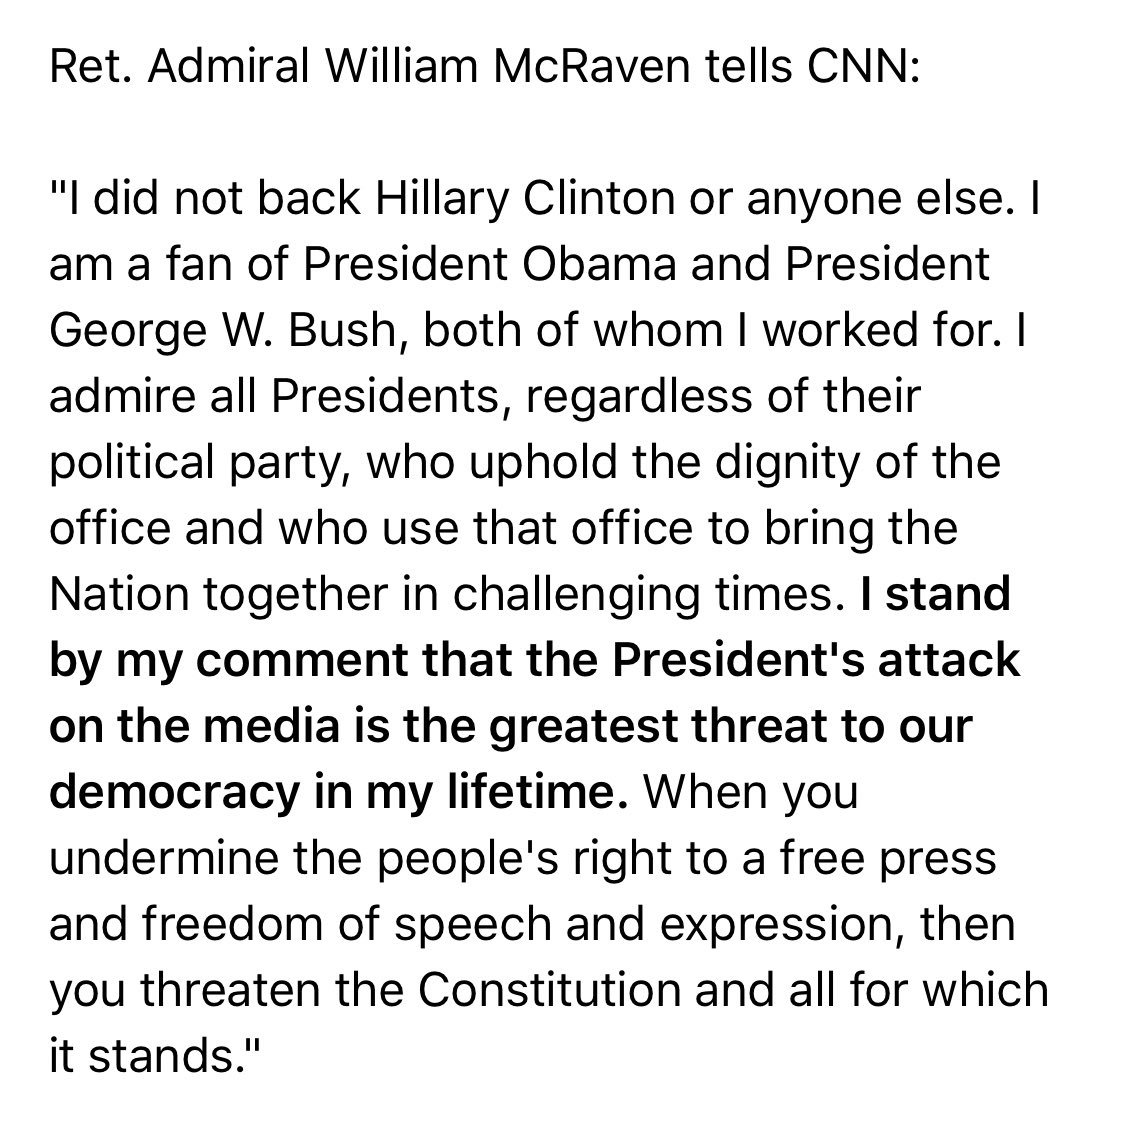 Via @jaketapper, Ret. Admiral William McRaven's response to Trump: 'I stand by my comment that the President's attack on the media is the greatest threat to our democracy in my lifetime.'